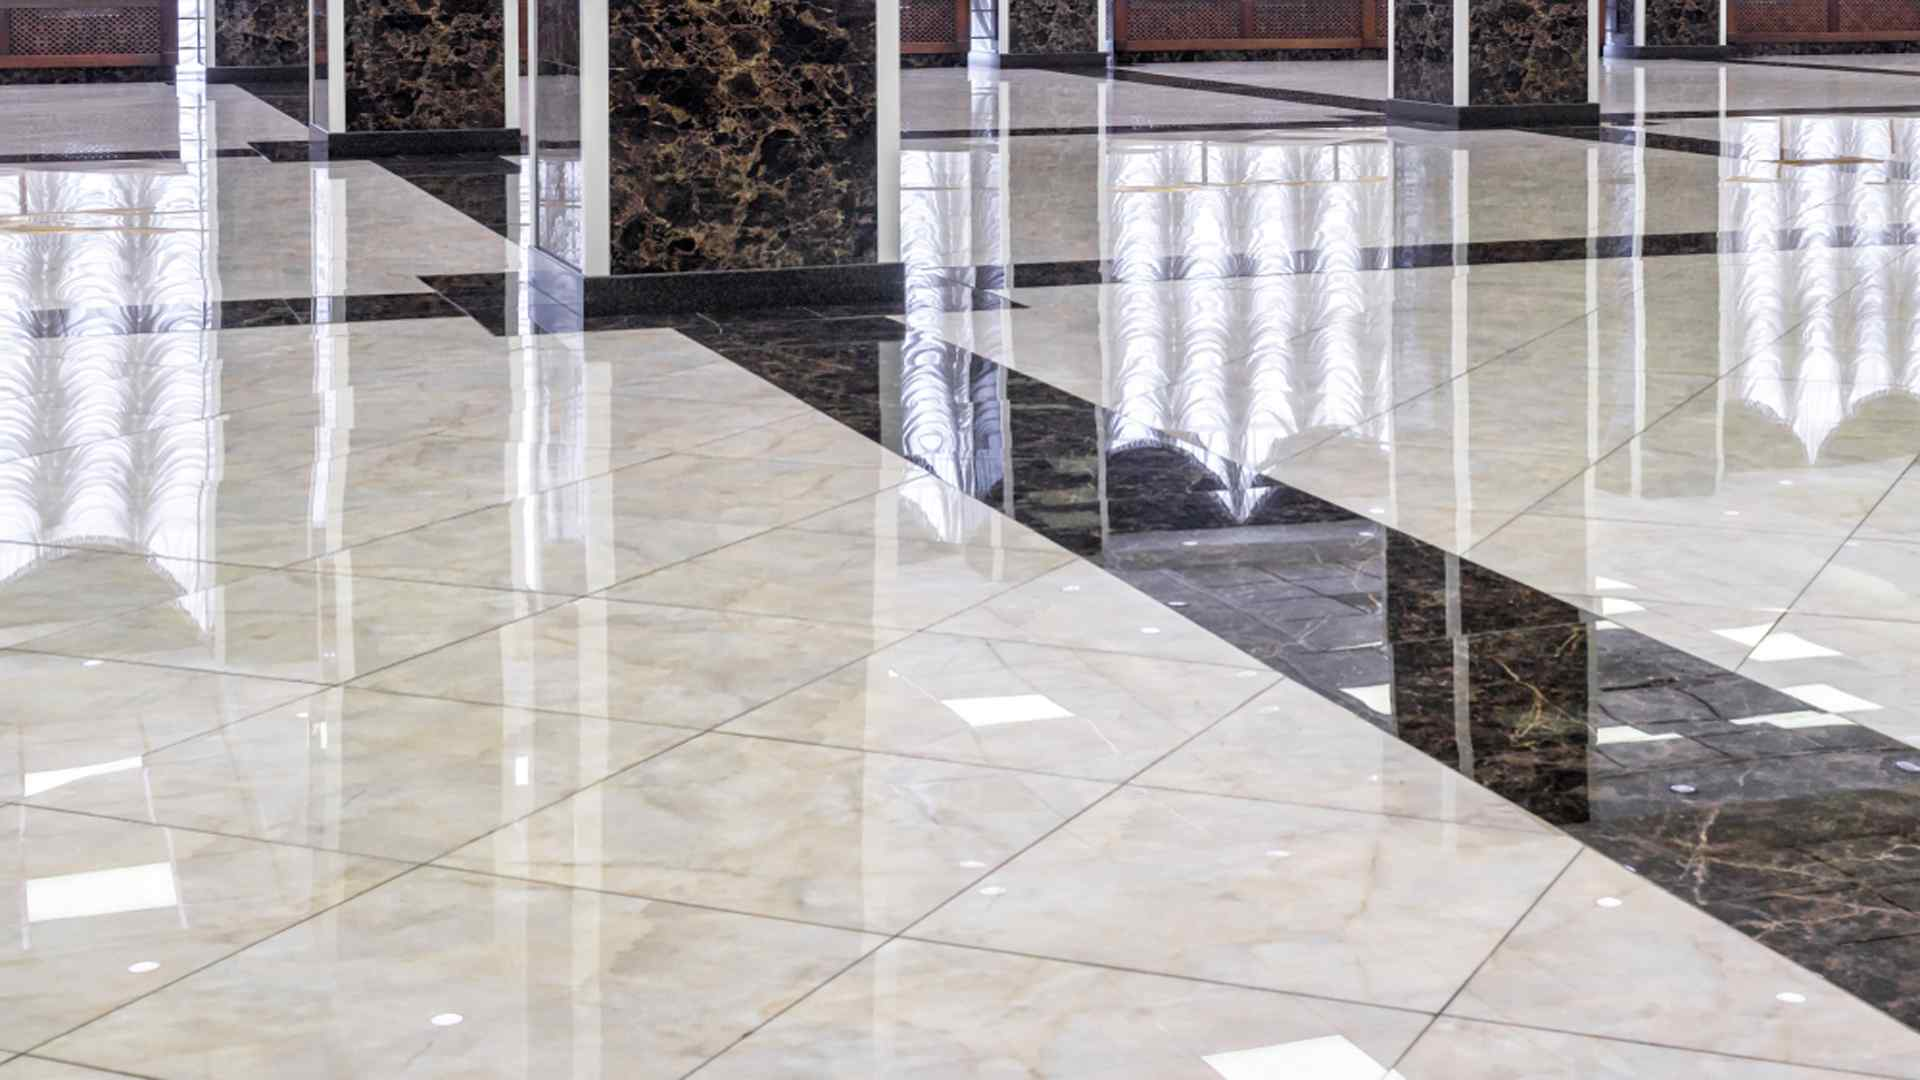 Cleaned Tile Floors-Floor Cleaning-Commercial Cleaning Greensboro High Point NC-True Clean Experience-2307 West Cone Blvd Suite G, Greensboro NC 27408